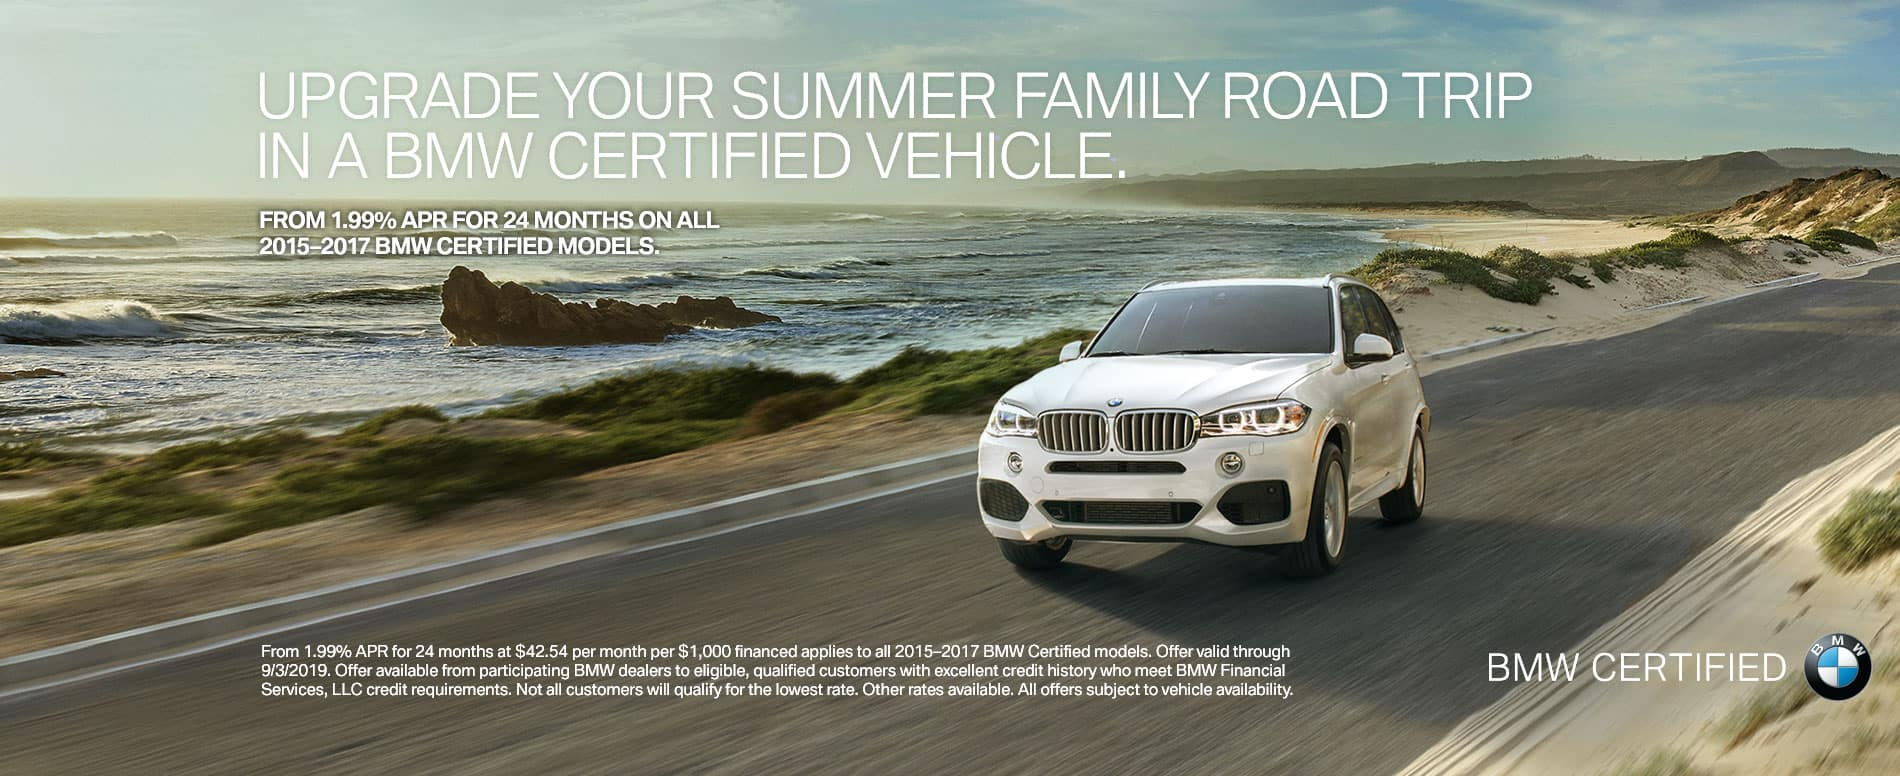 Bmw Dealer Near Me >> Bmw Of Minnetonka Bmw Dealer In Minnetonka Mn